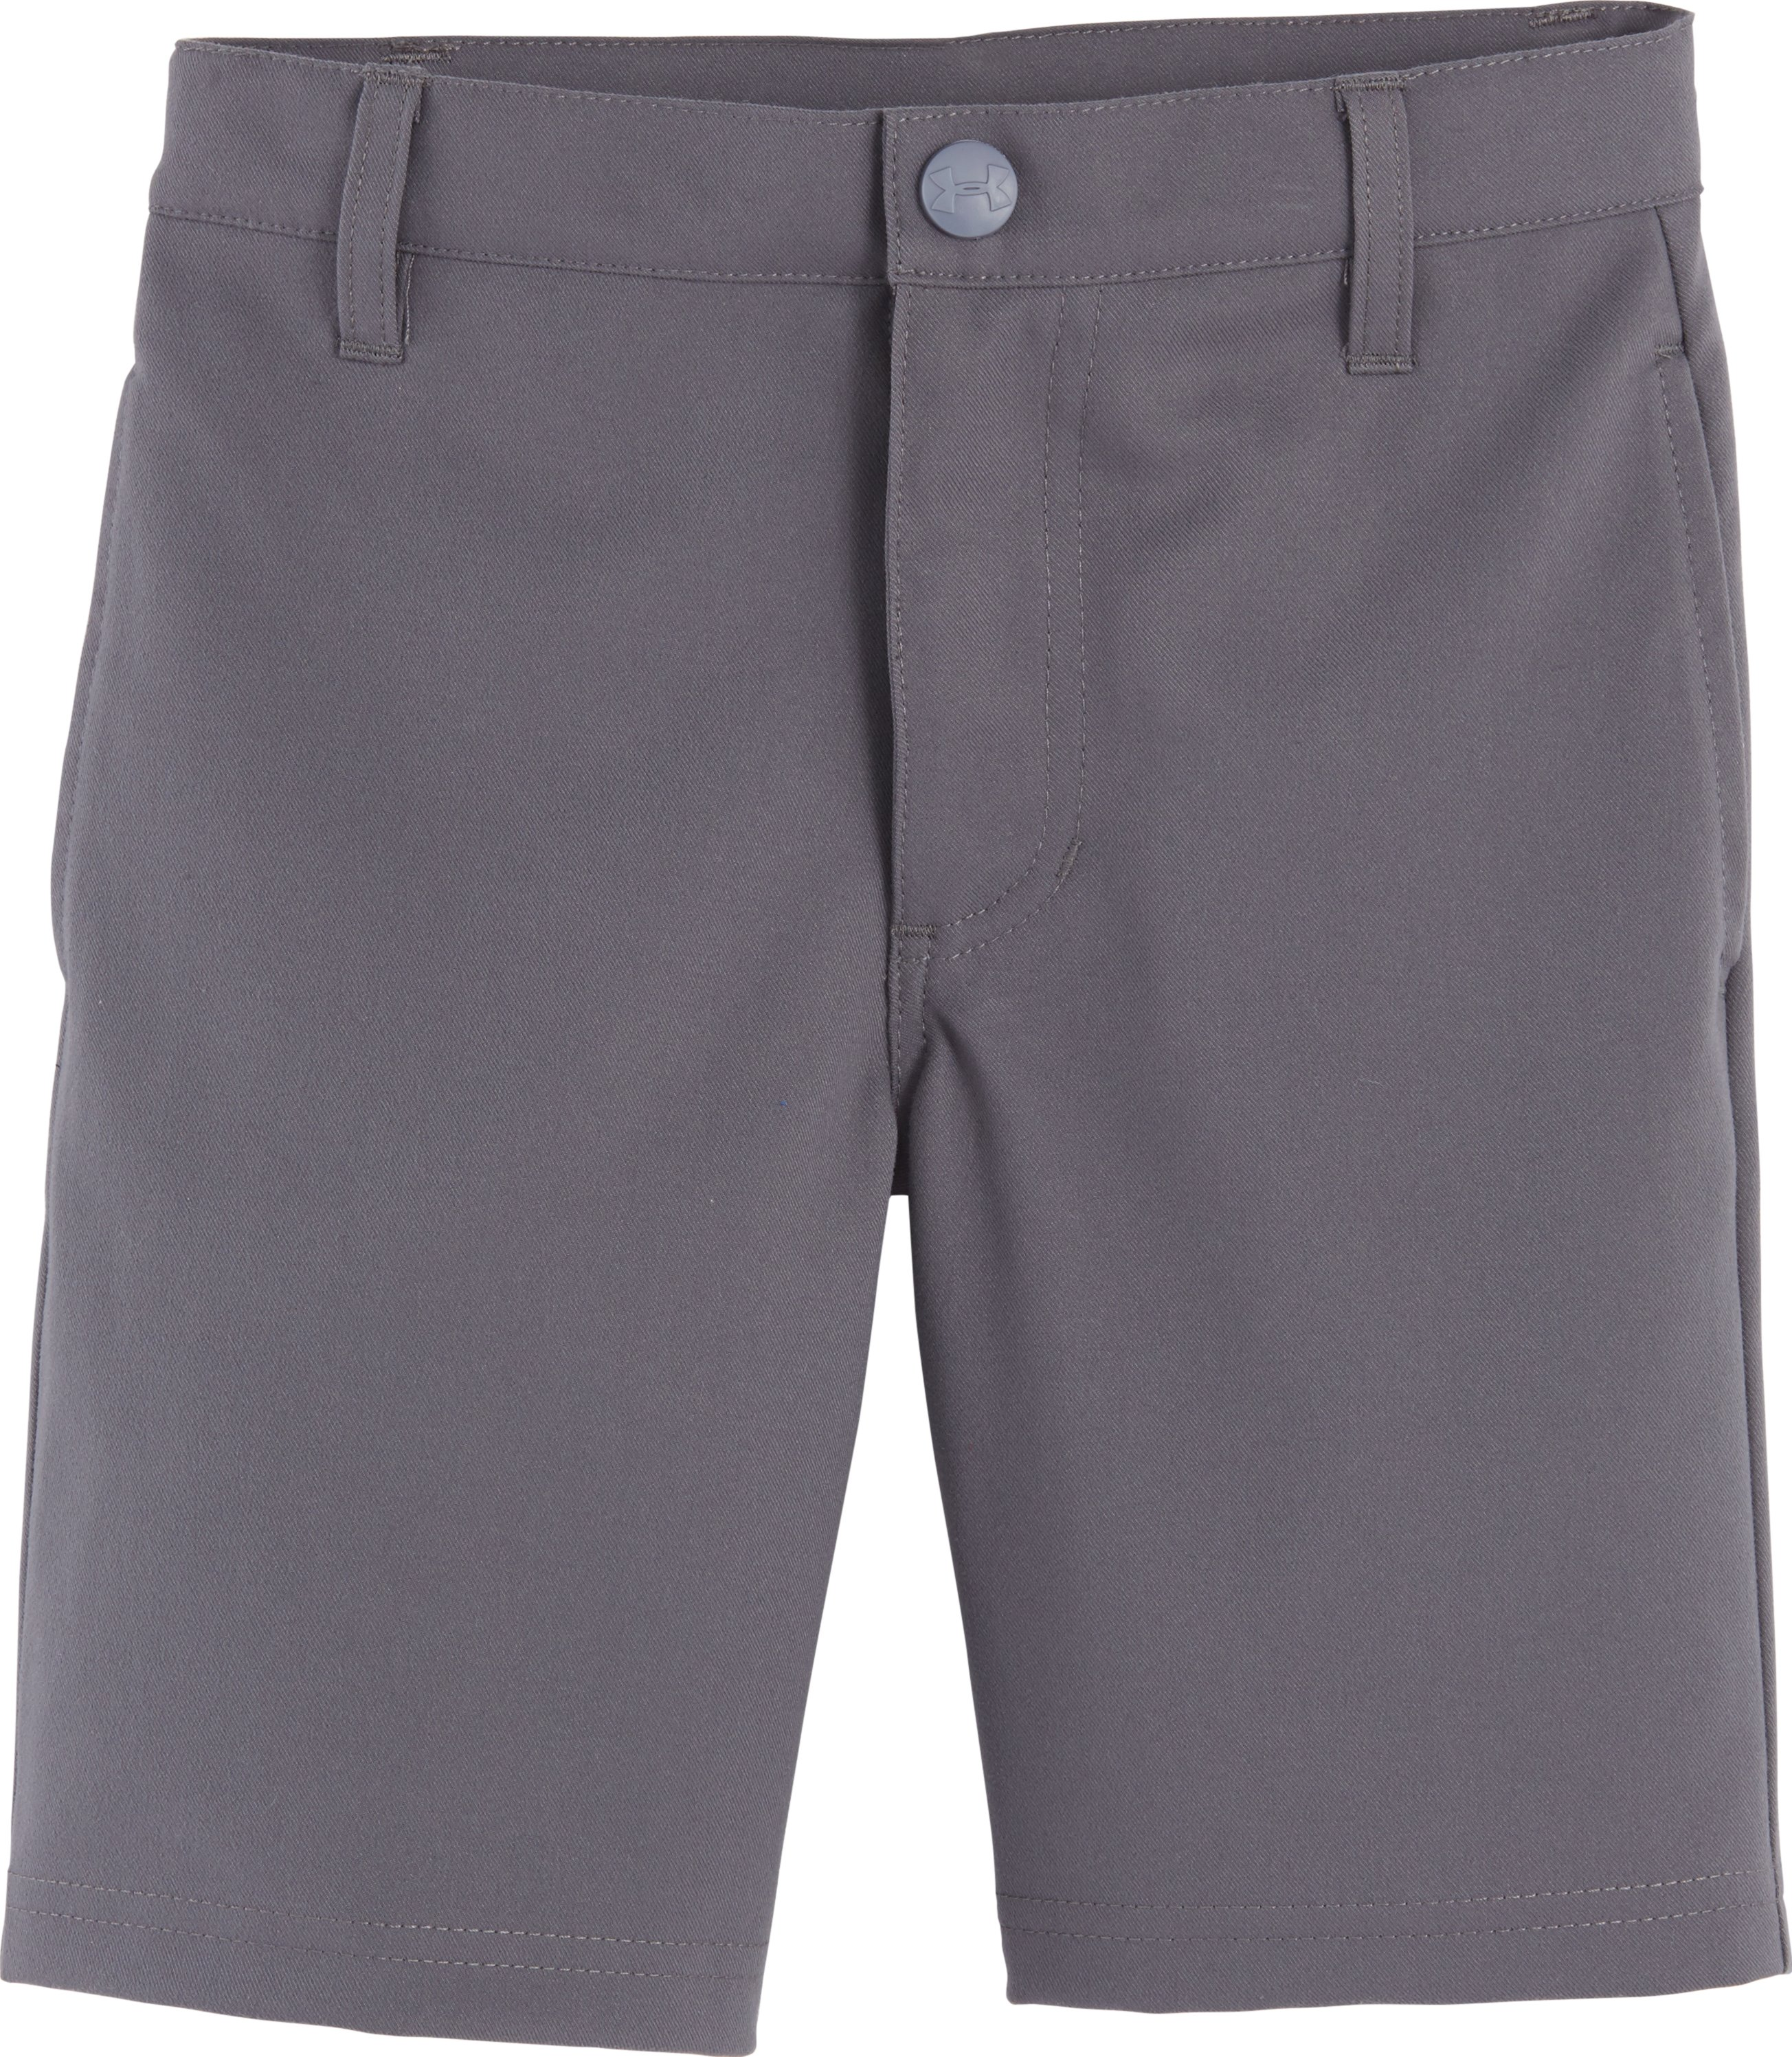 Boys' Pre-School UA Golf Medal Play Shorts, Graphite, Laydown